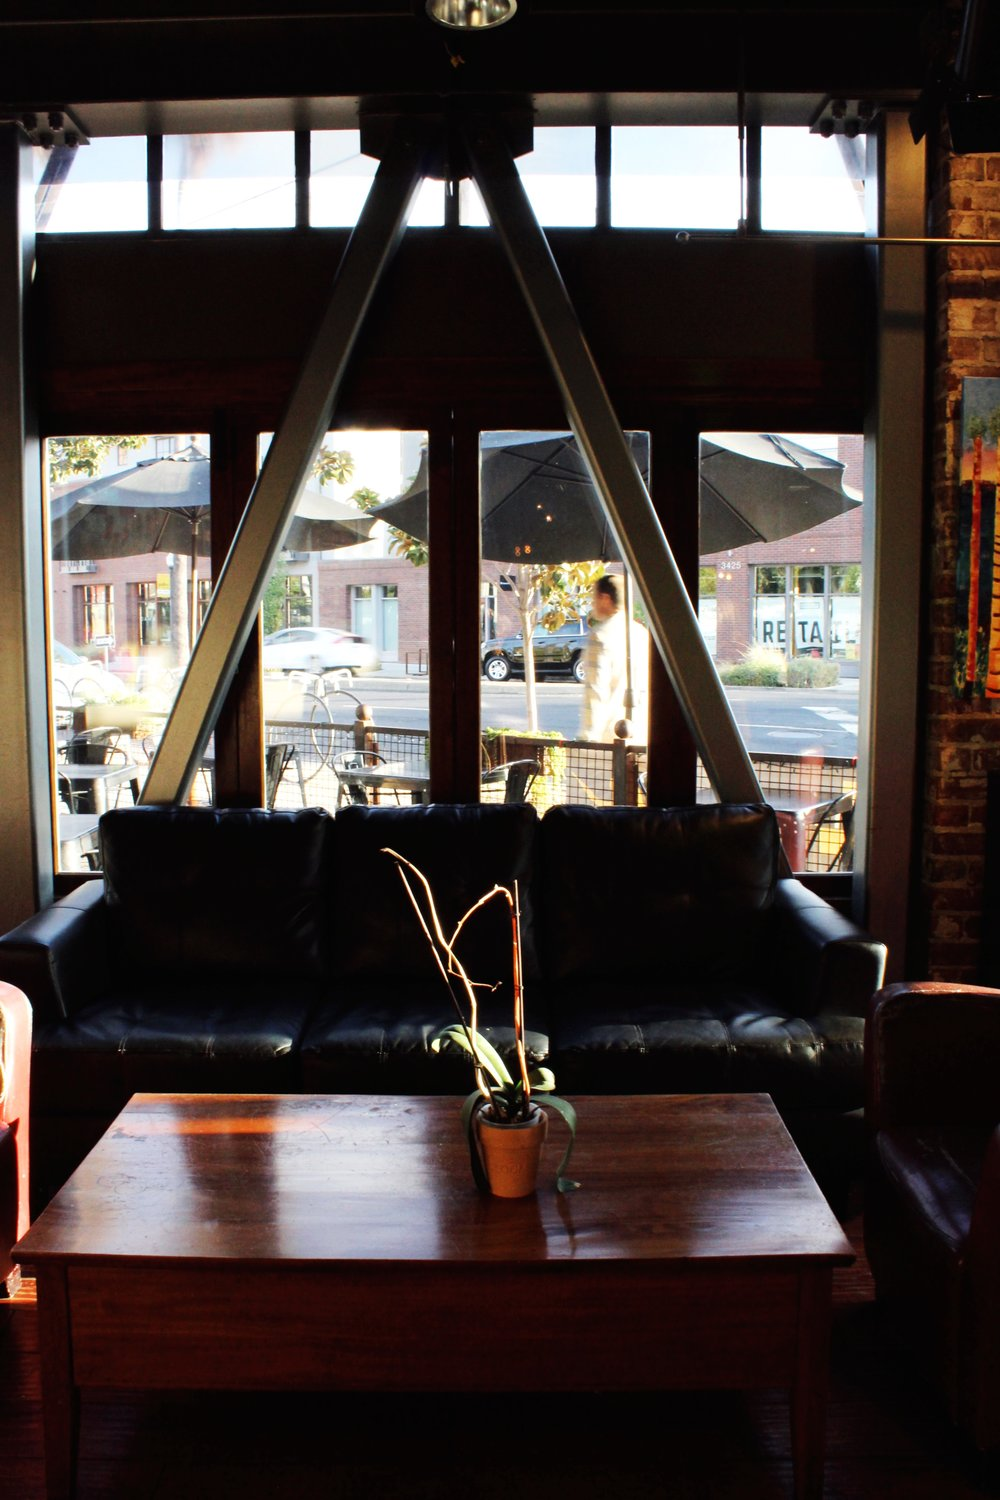 Triangle window pane/ leather couch/ cozy nook at old soul coffee in oak park sacramento California